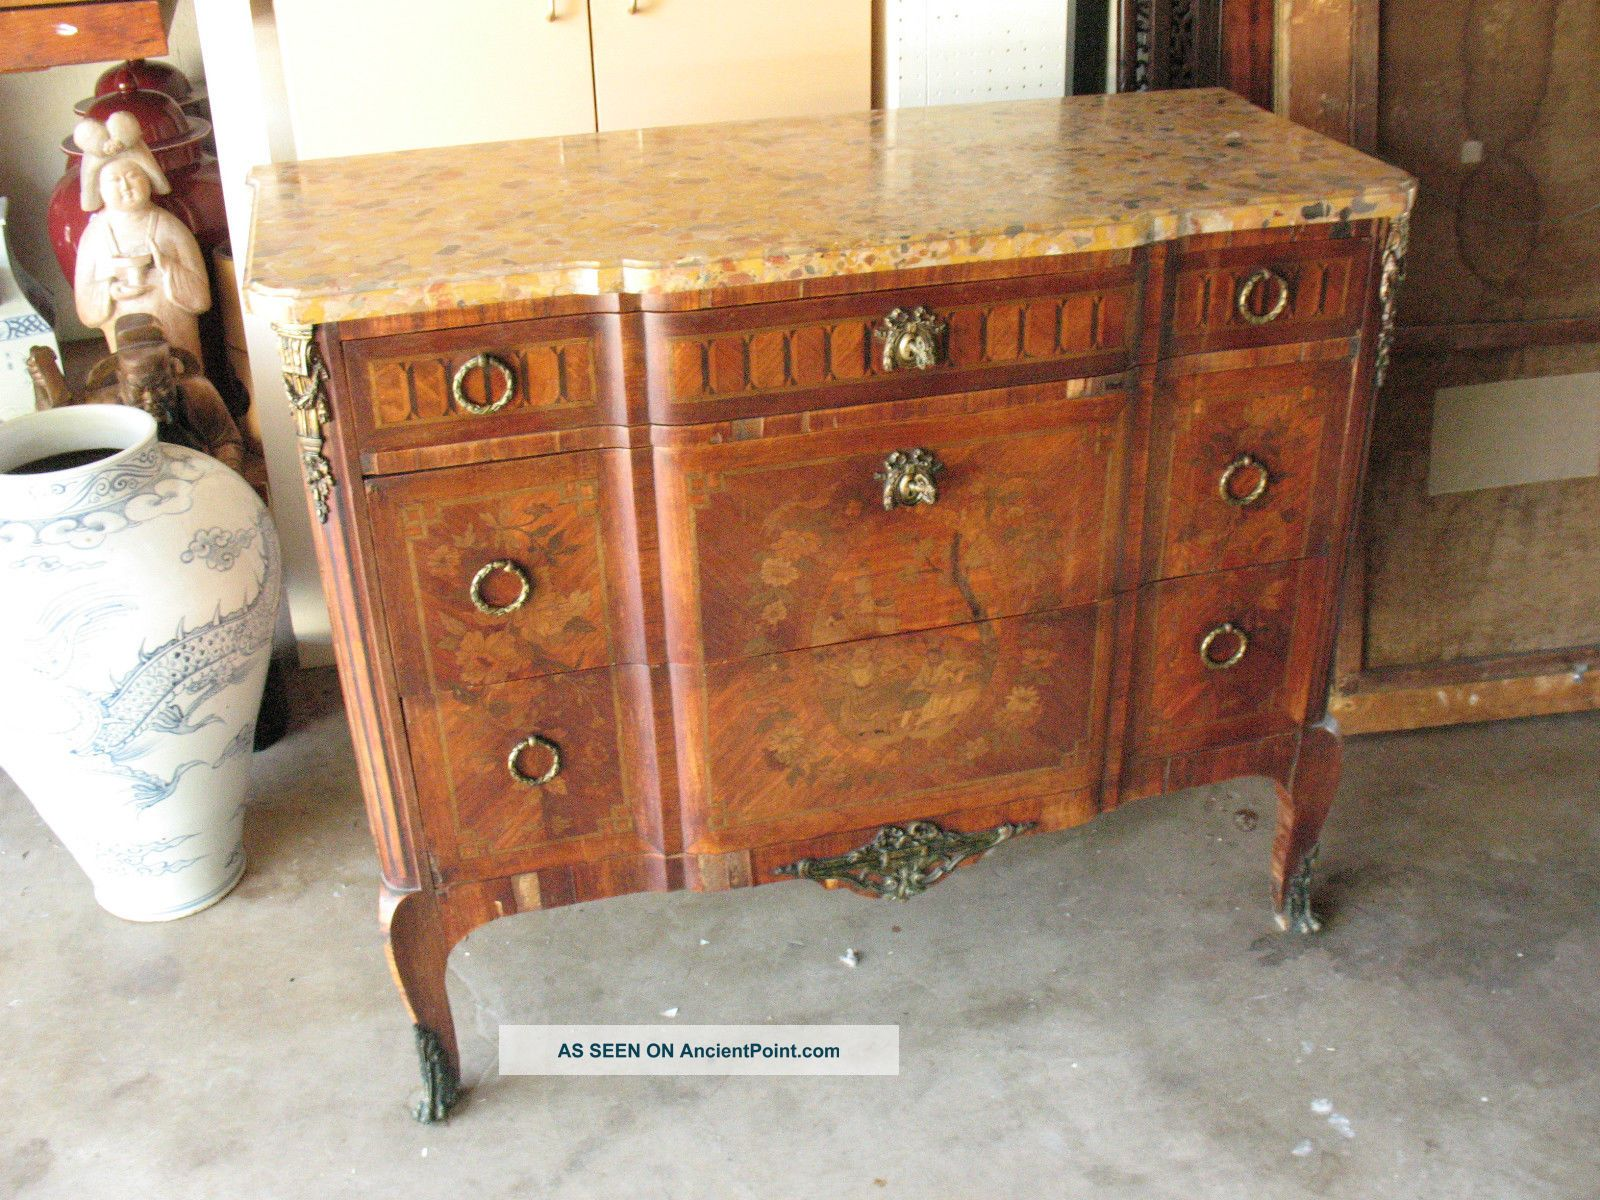 Old Estate French Furniture Display Chest Hard Wood Stand Table Bronze Ormalu 1900-1950 photo